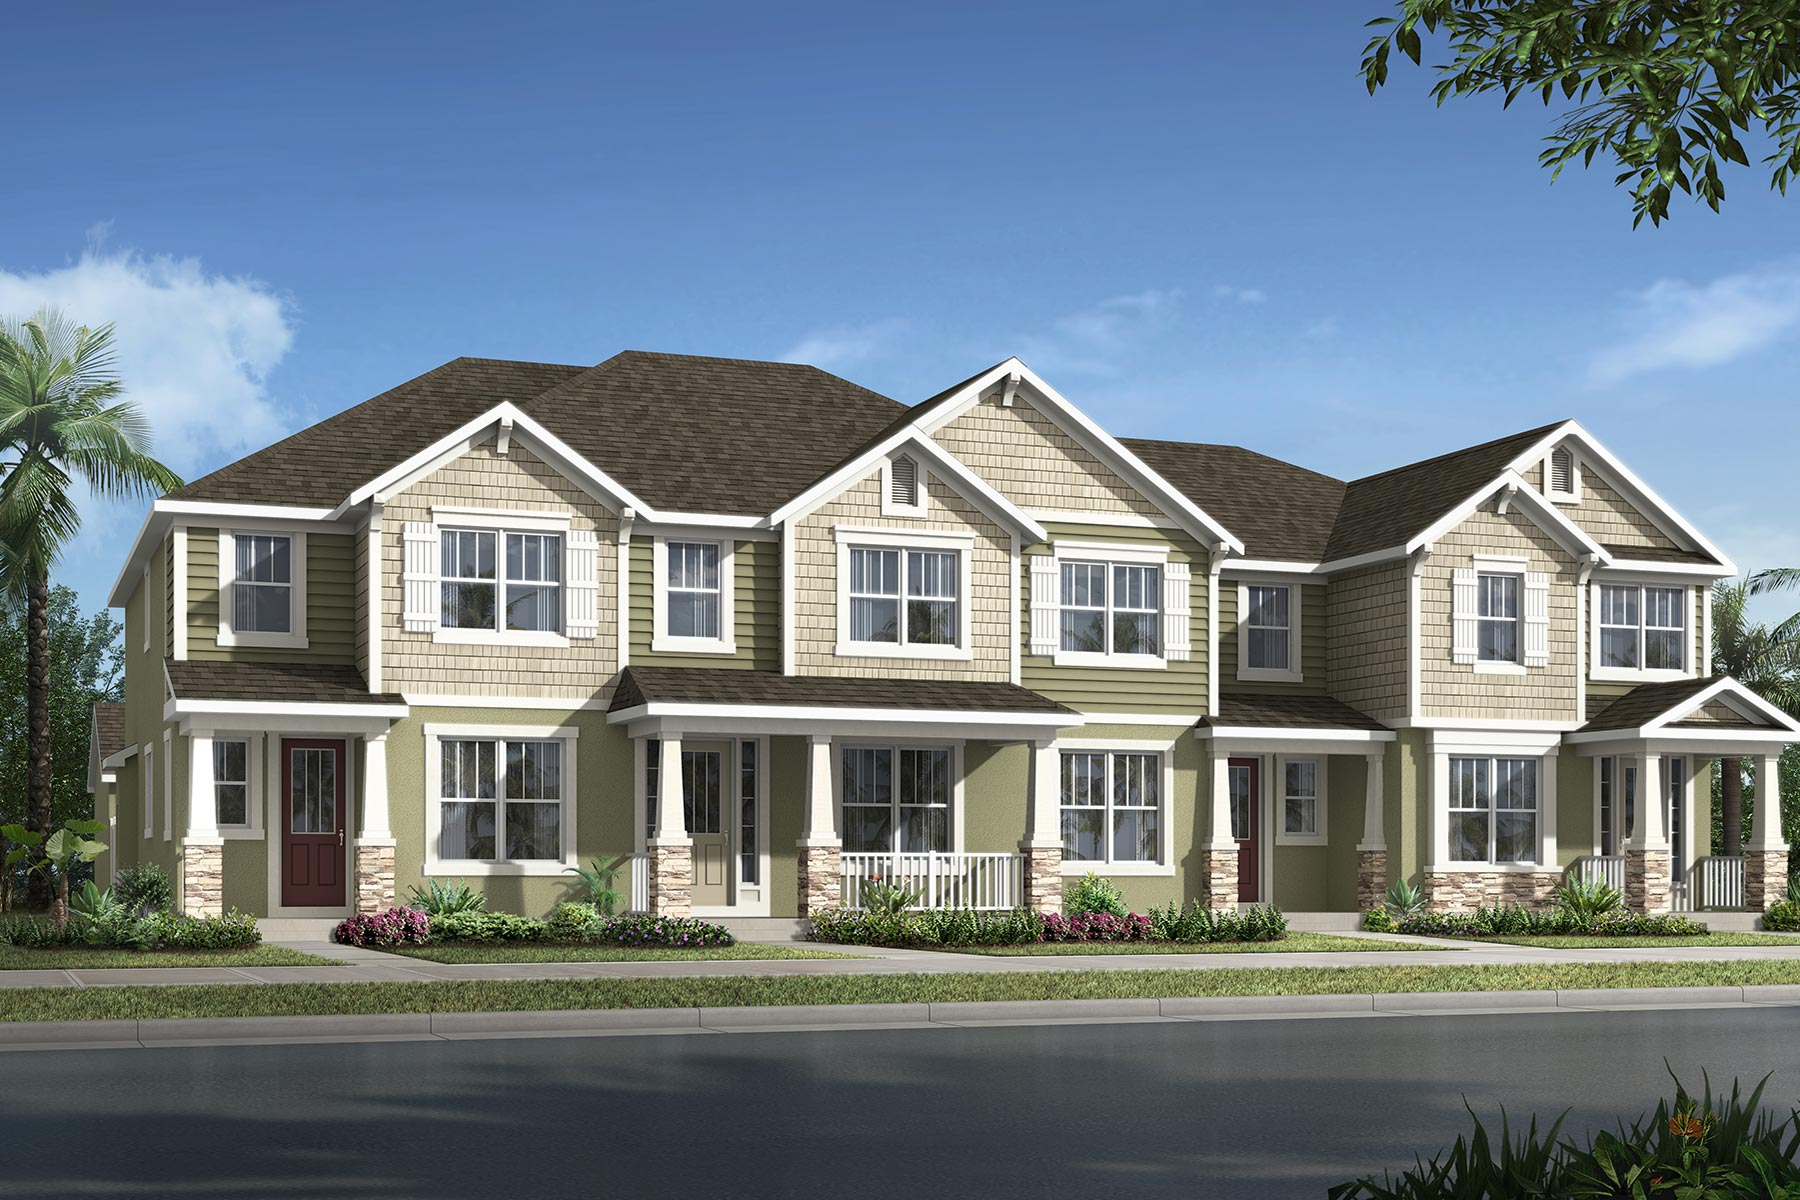 Devonshire II Plan TownHomes at Meridian Parks in Orlando Florida by Mattamy Homes